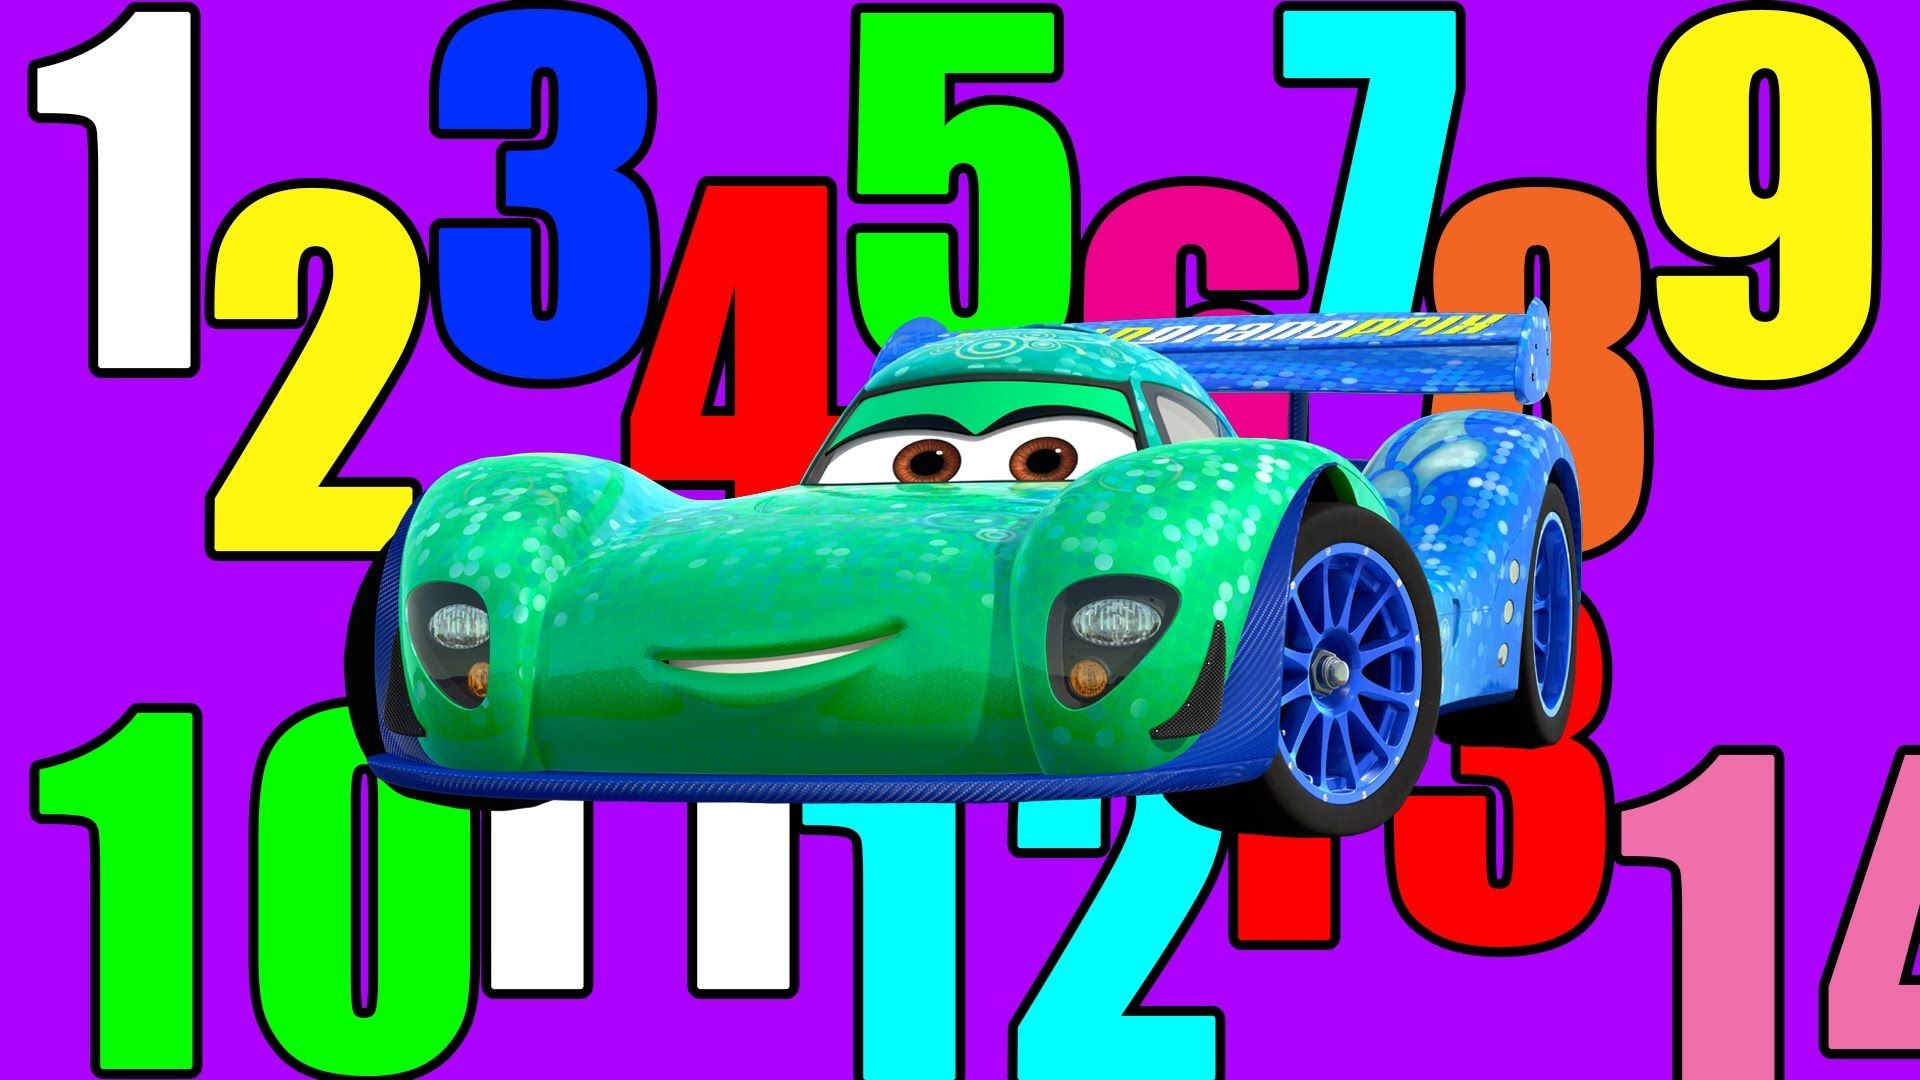 Learn numbers and counting with your Disney Pixar Cars and